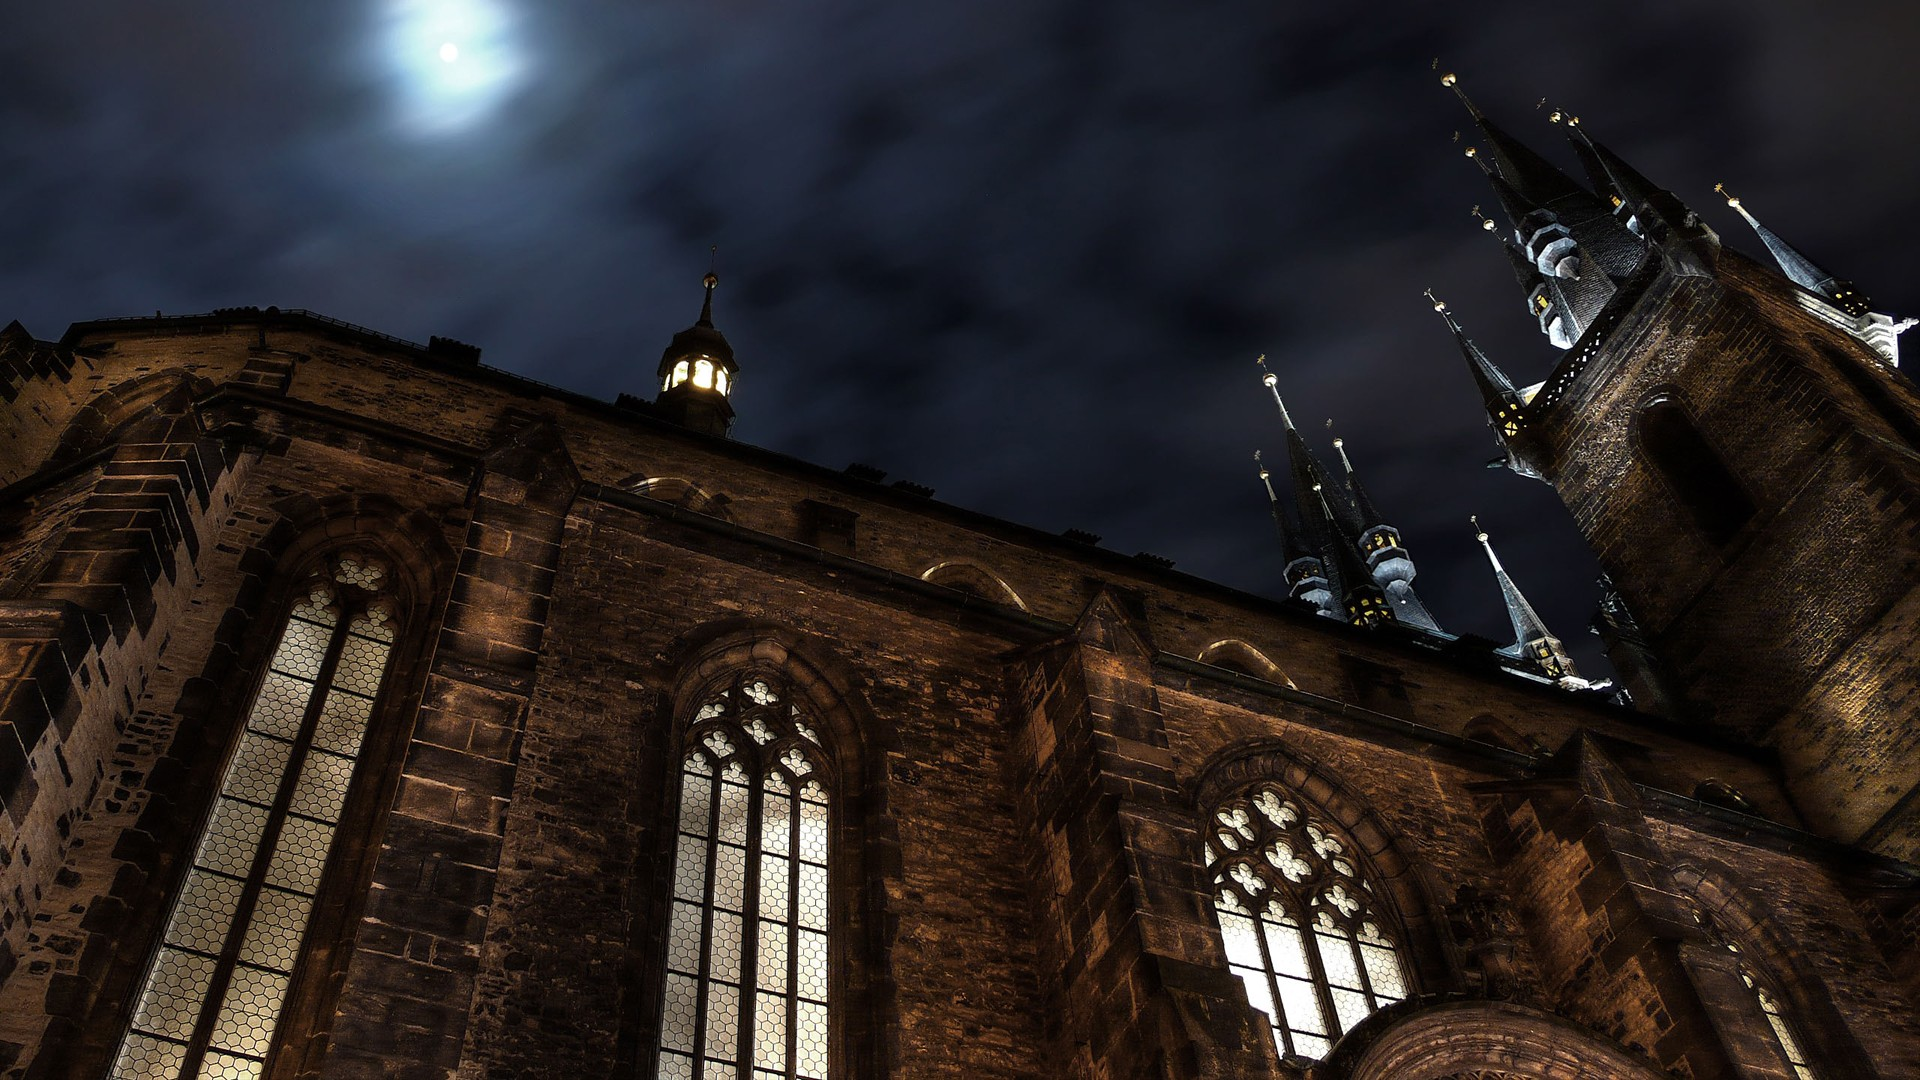 General 1920x1080 church night architecture Gothic Prague Church of Our Lady before Týn